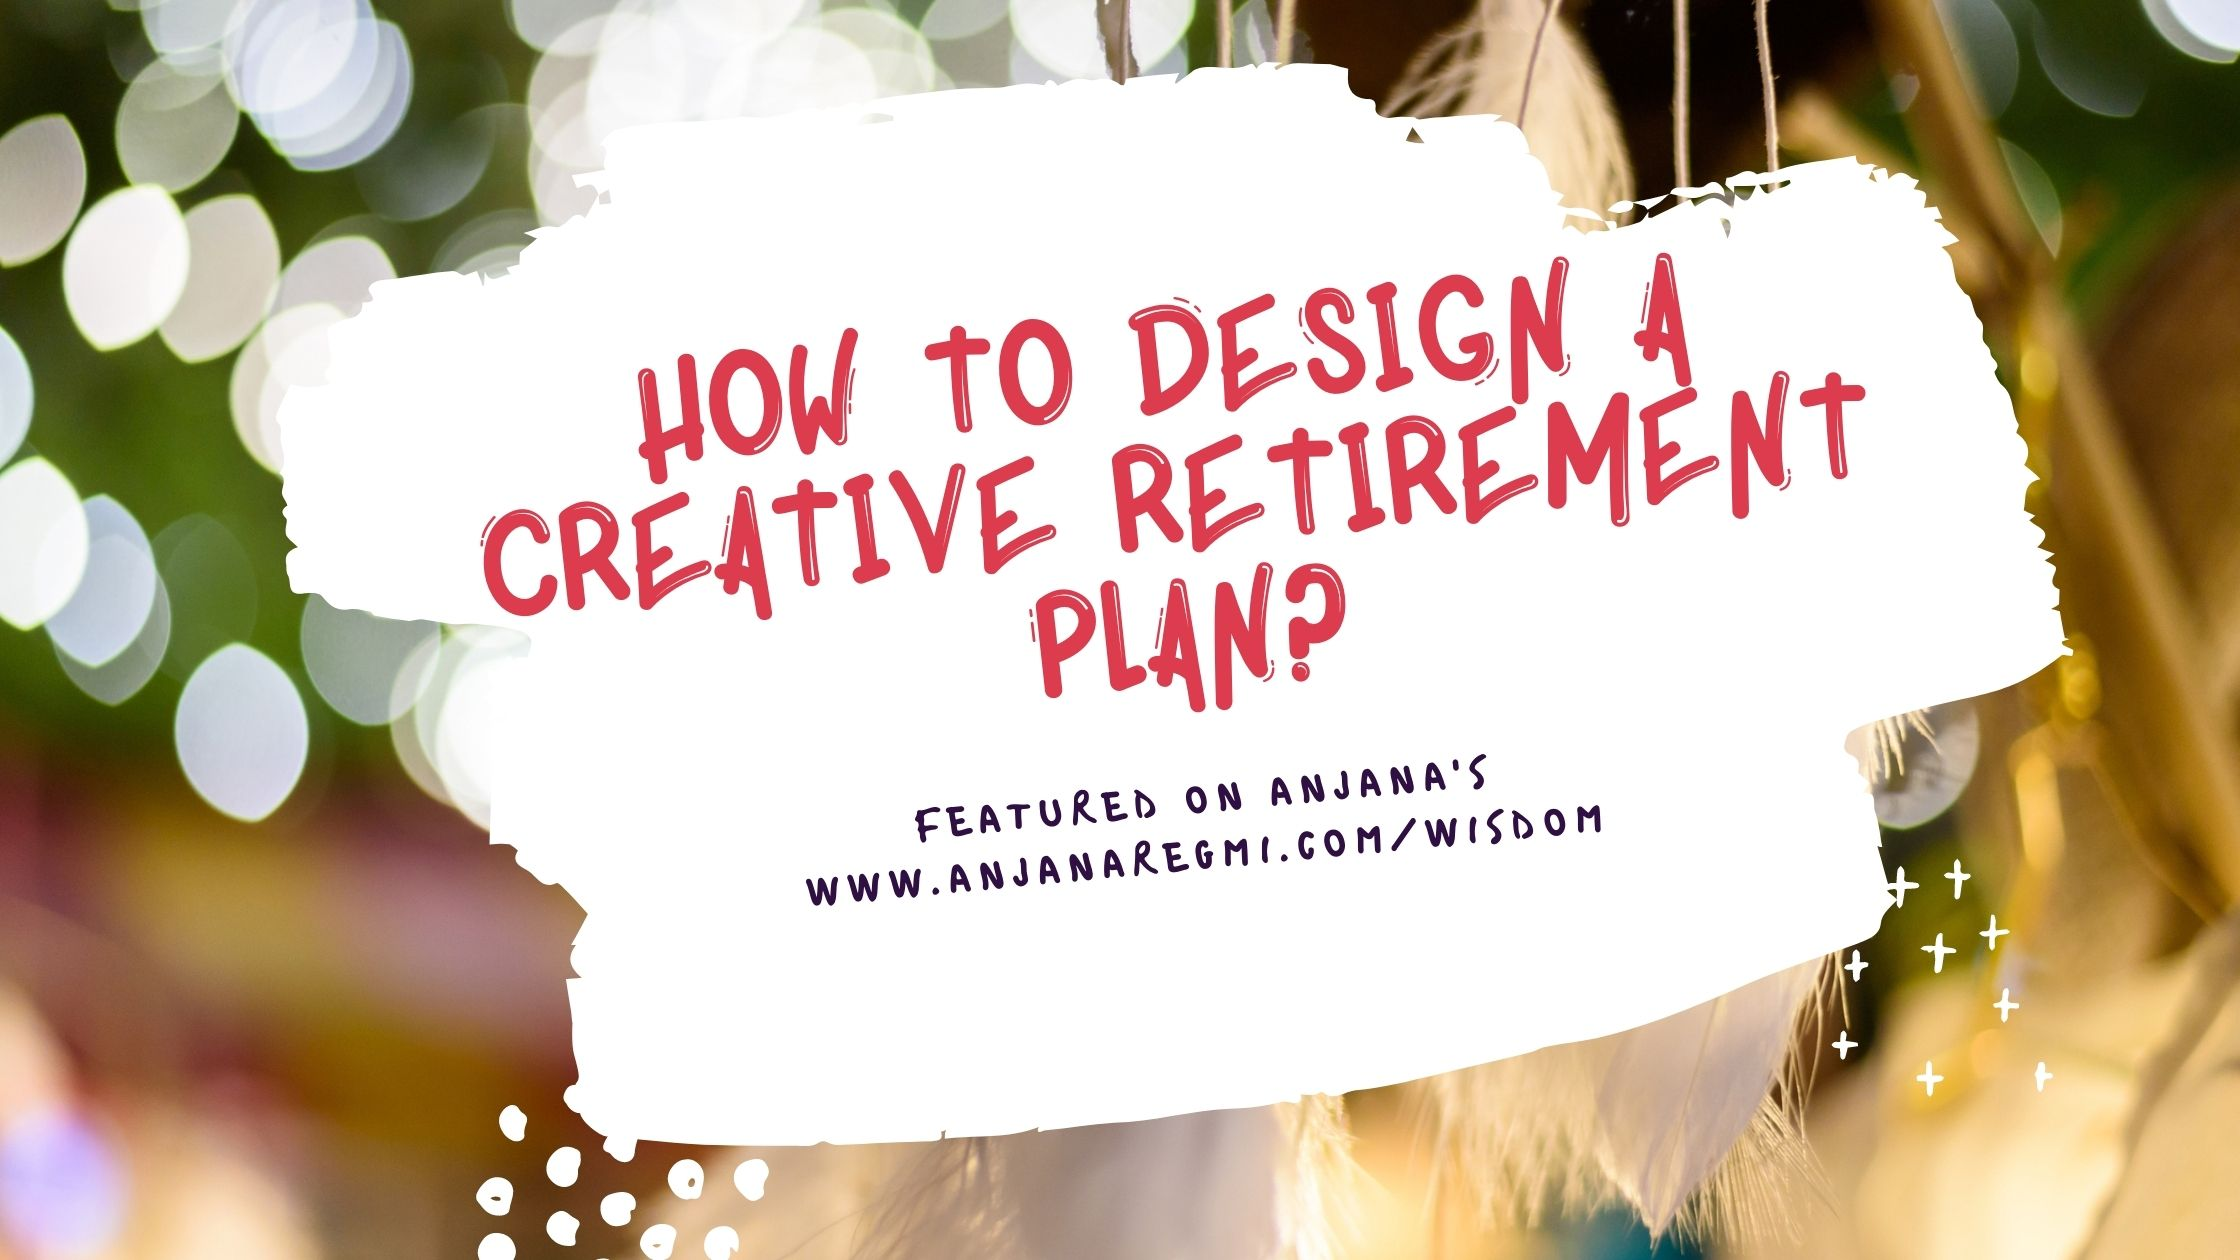 How to design a creative retirement